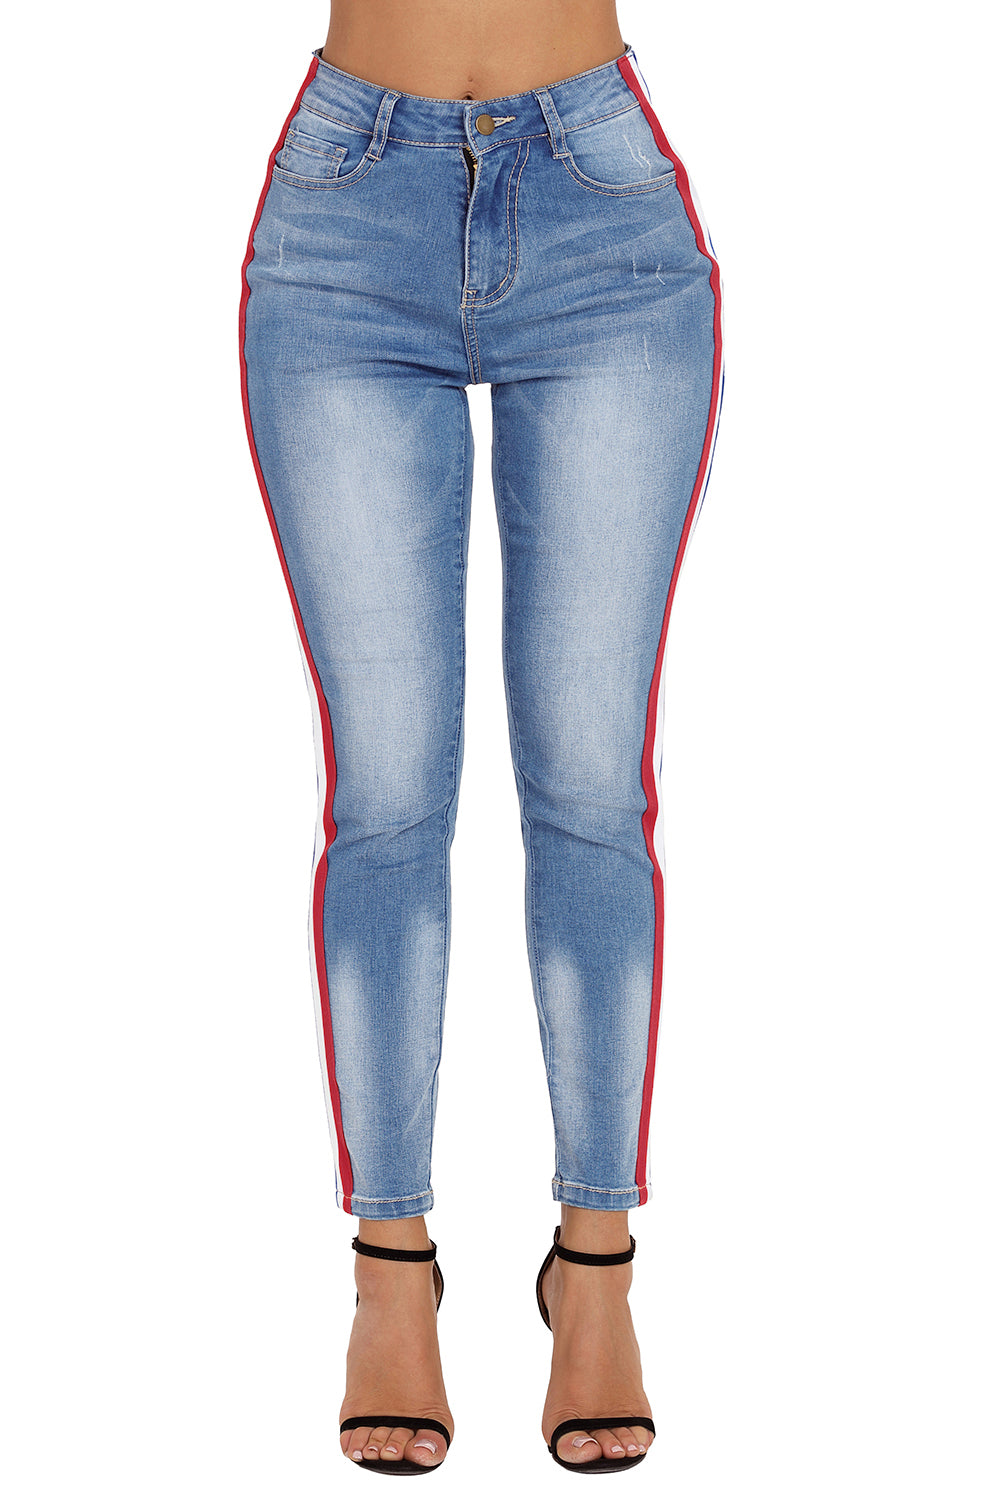 Rainbow Racer Striped Blue Skinny Jeans